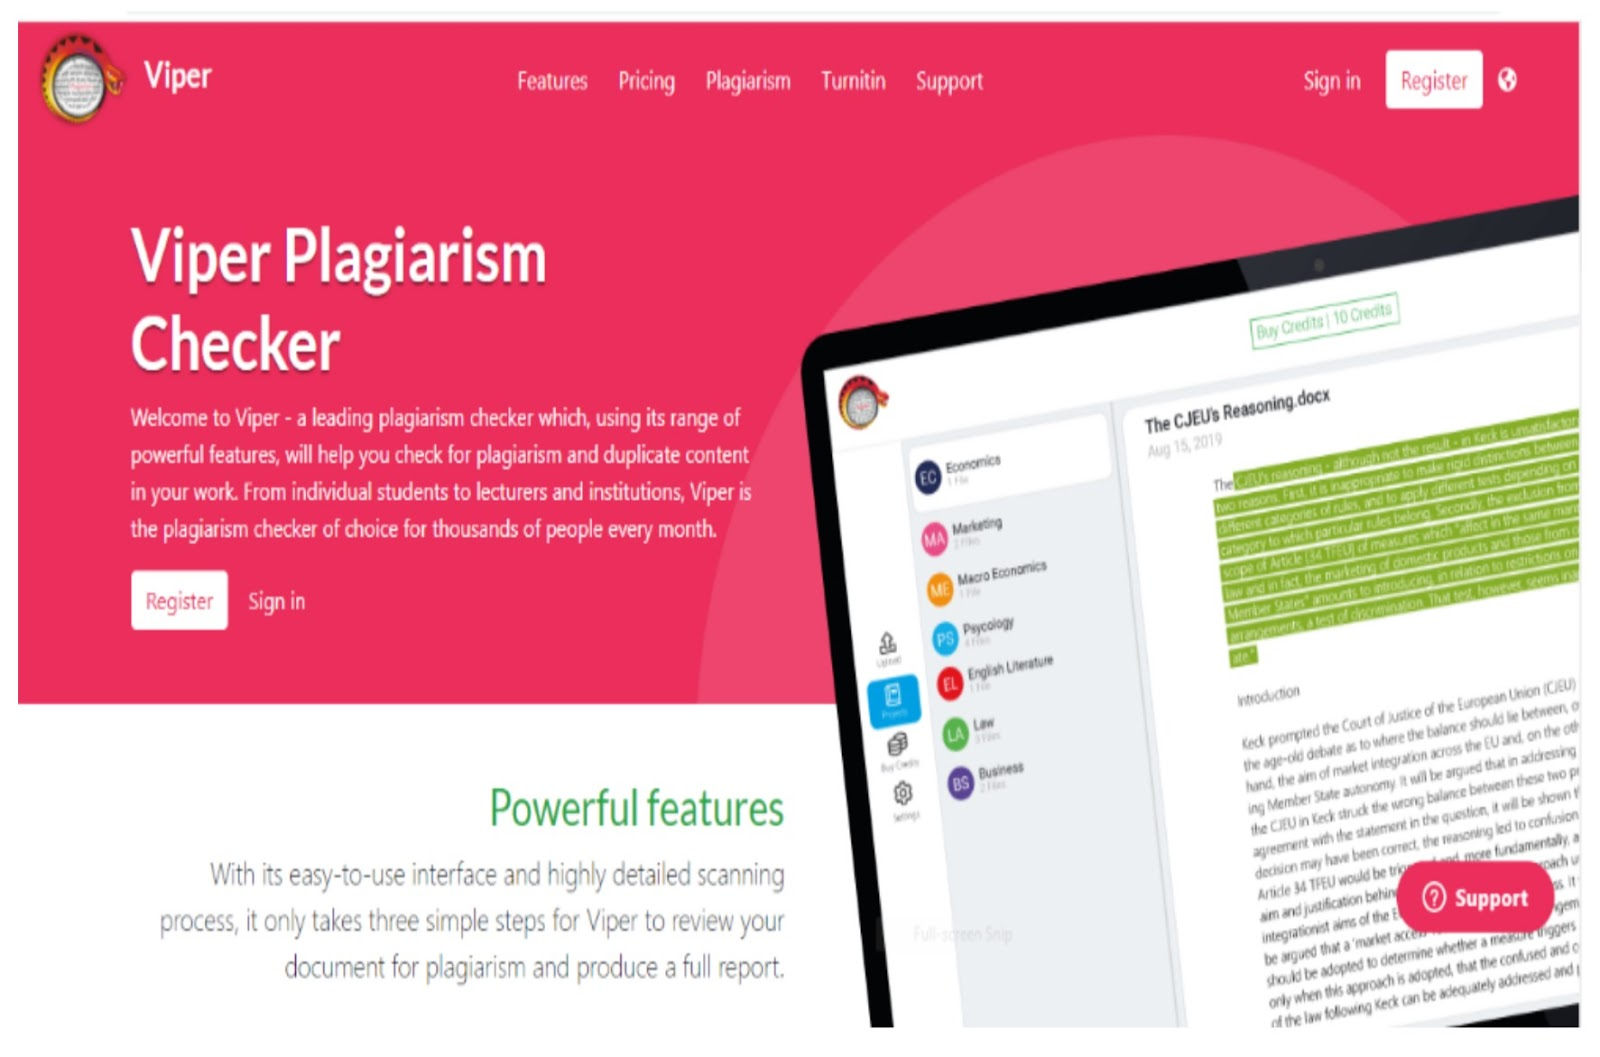 Viper Plagiarism Checker